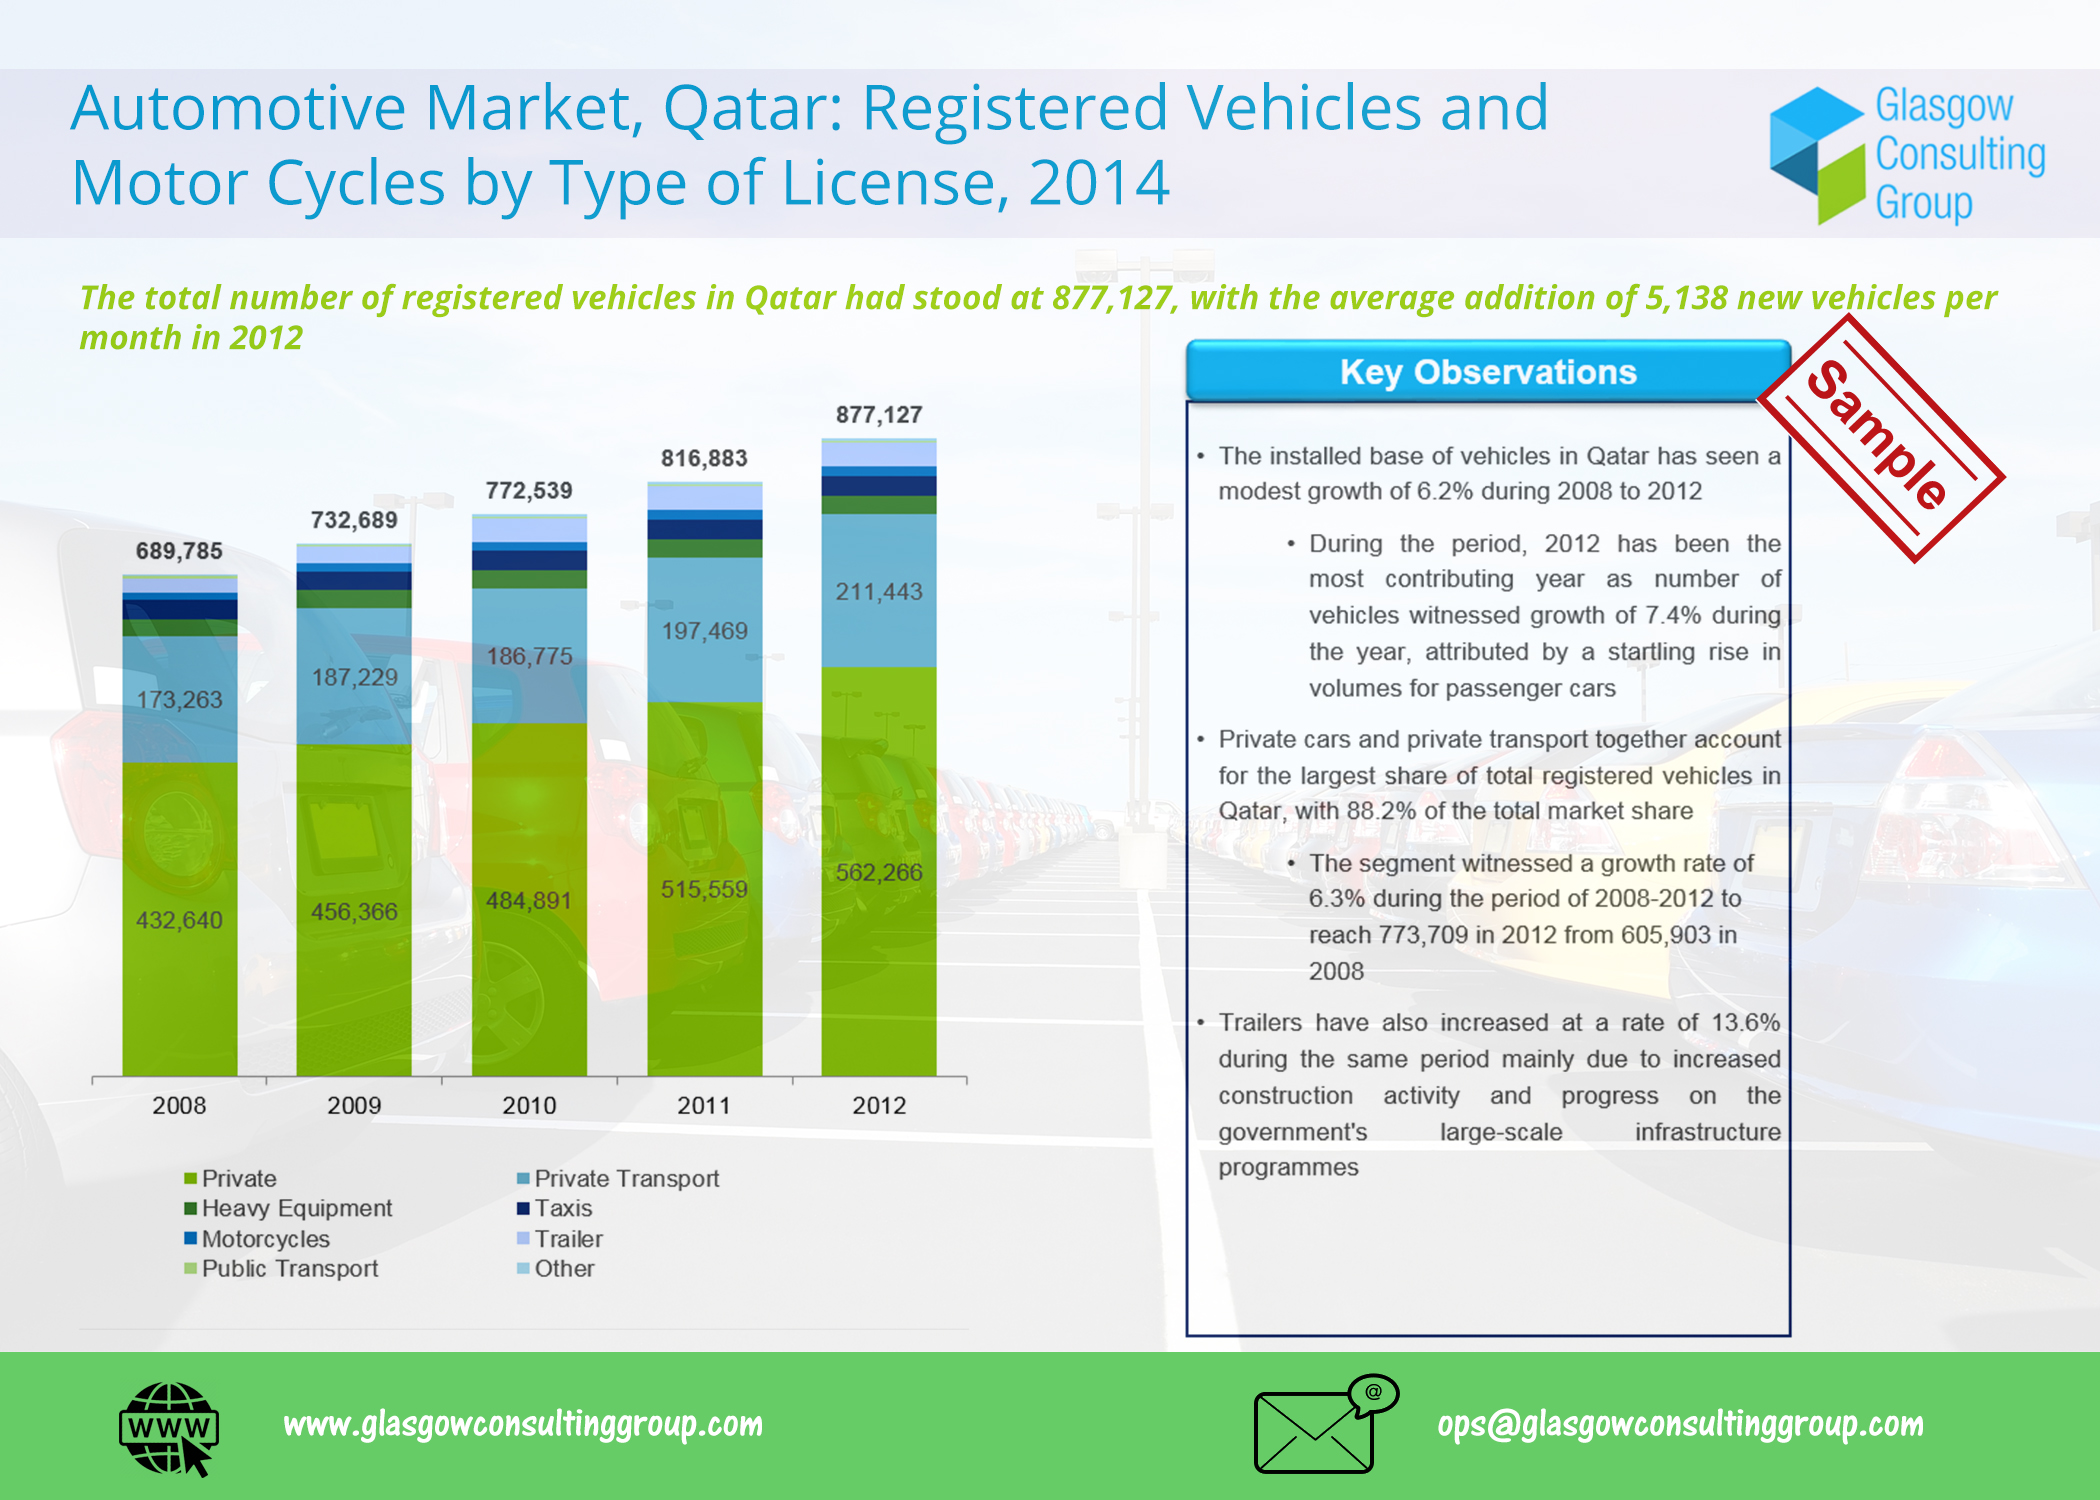 1 Automotive Market, Qatar Registered Vehicles and Motor Cycles by Type of License, 2014